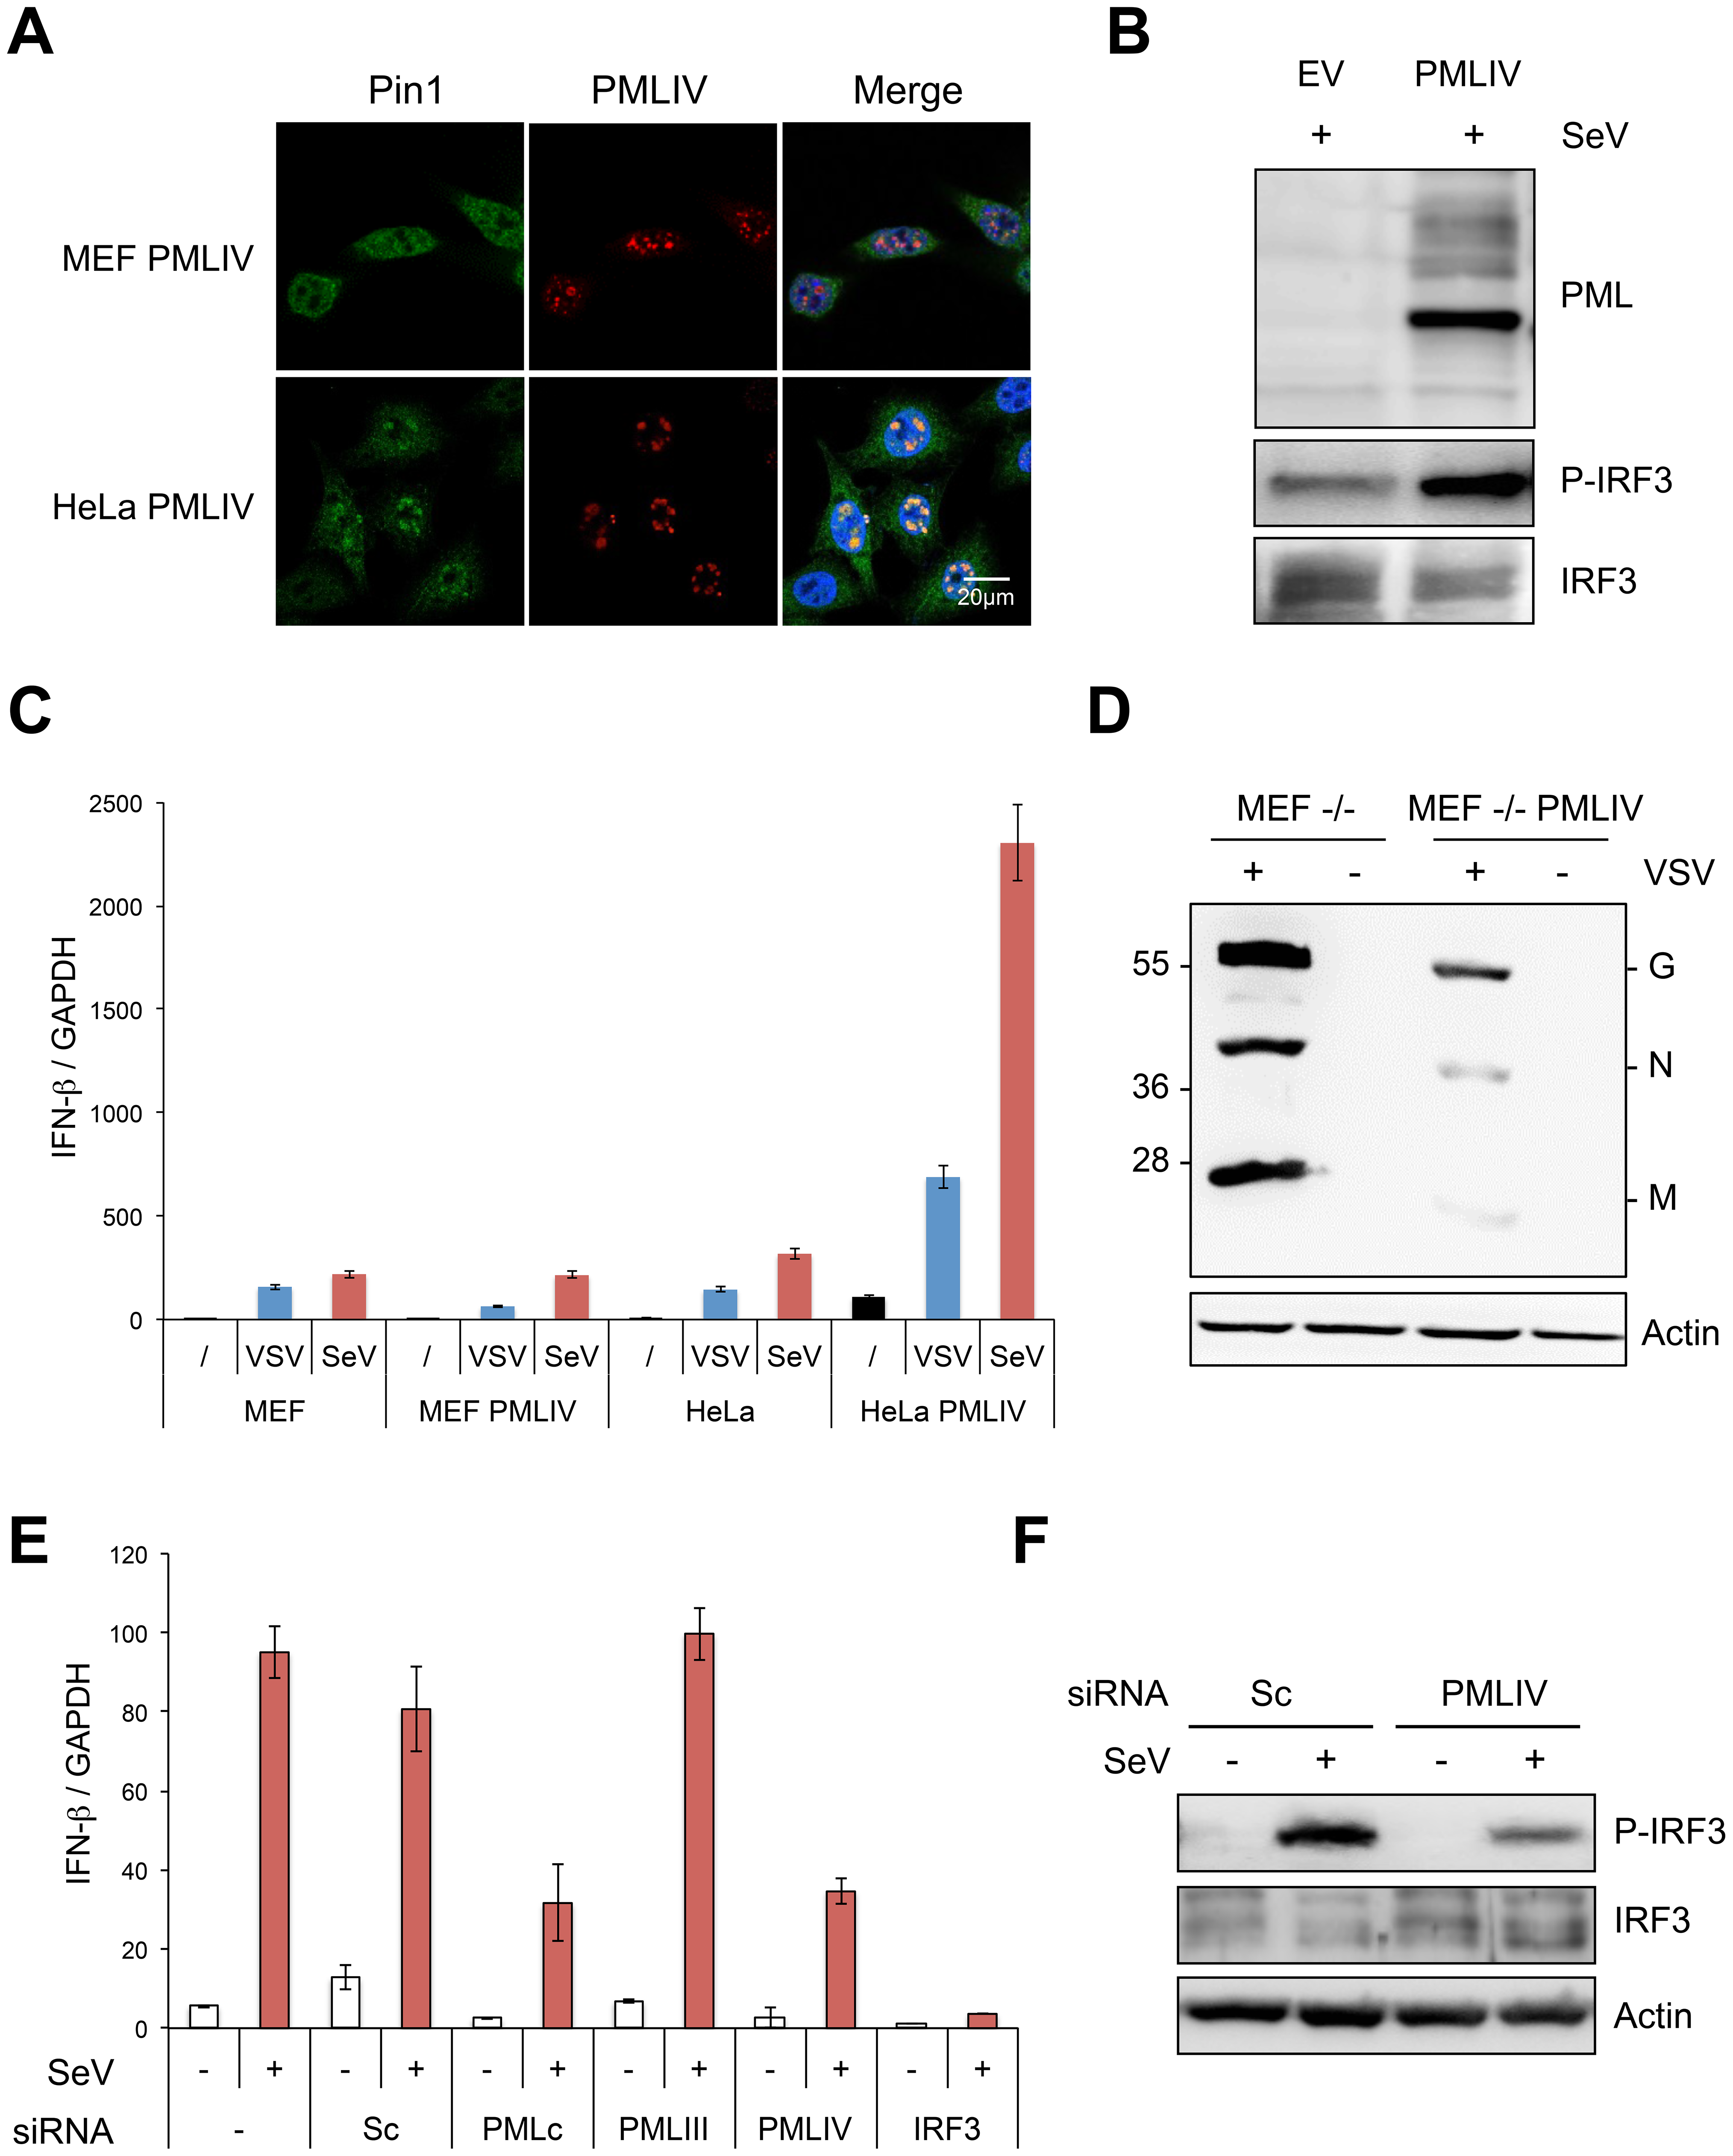 PMLIV is responsible for Pin1 recruitment in PML NBs, enhanced P-IRF3 and IFN-β synthesis upon viral infection.